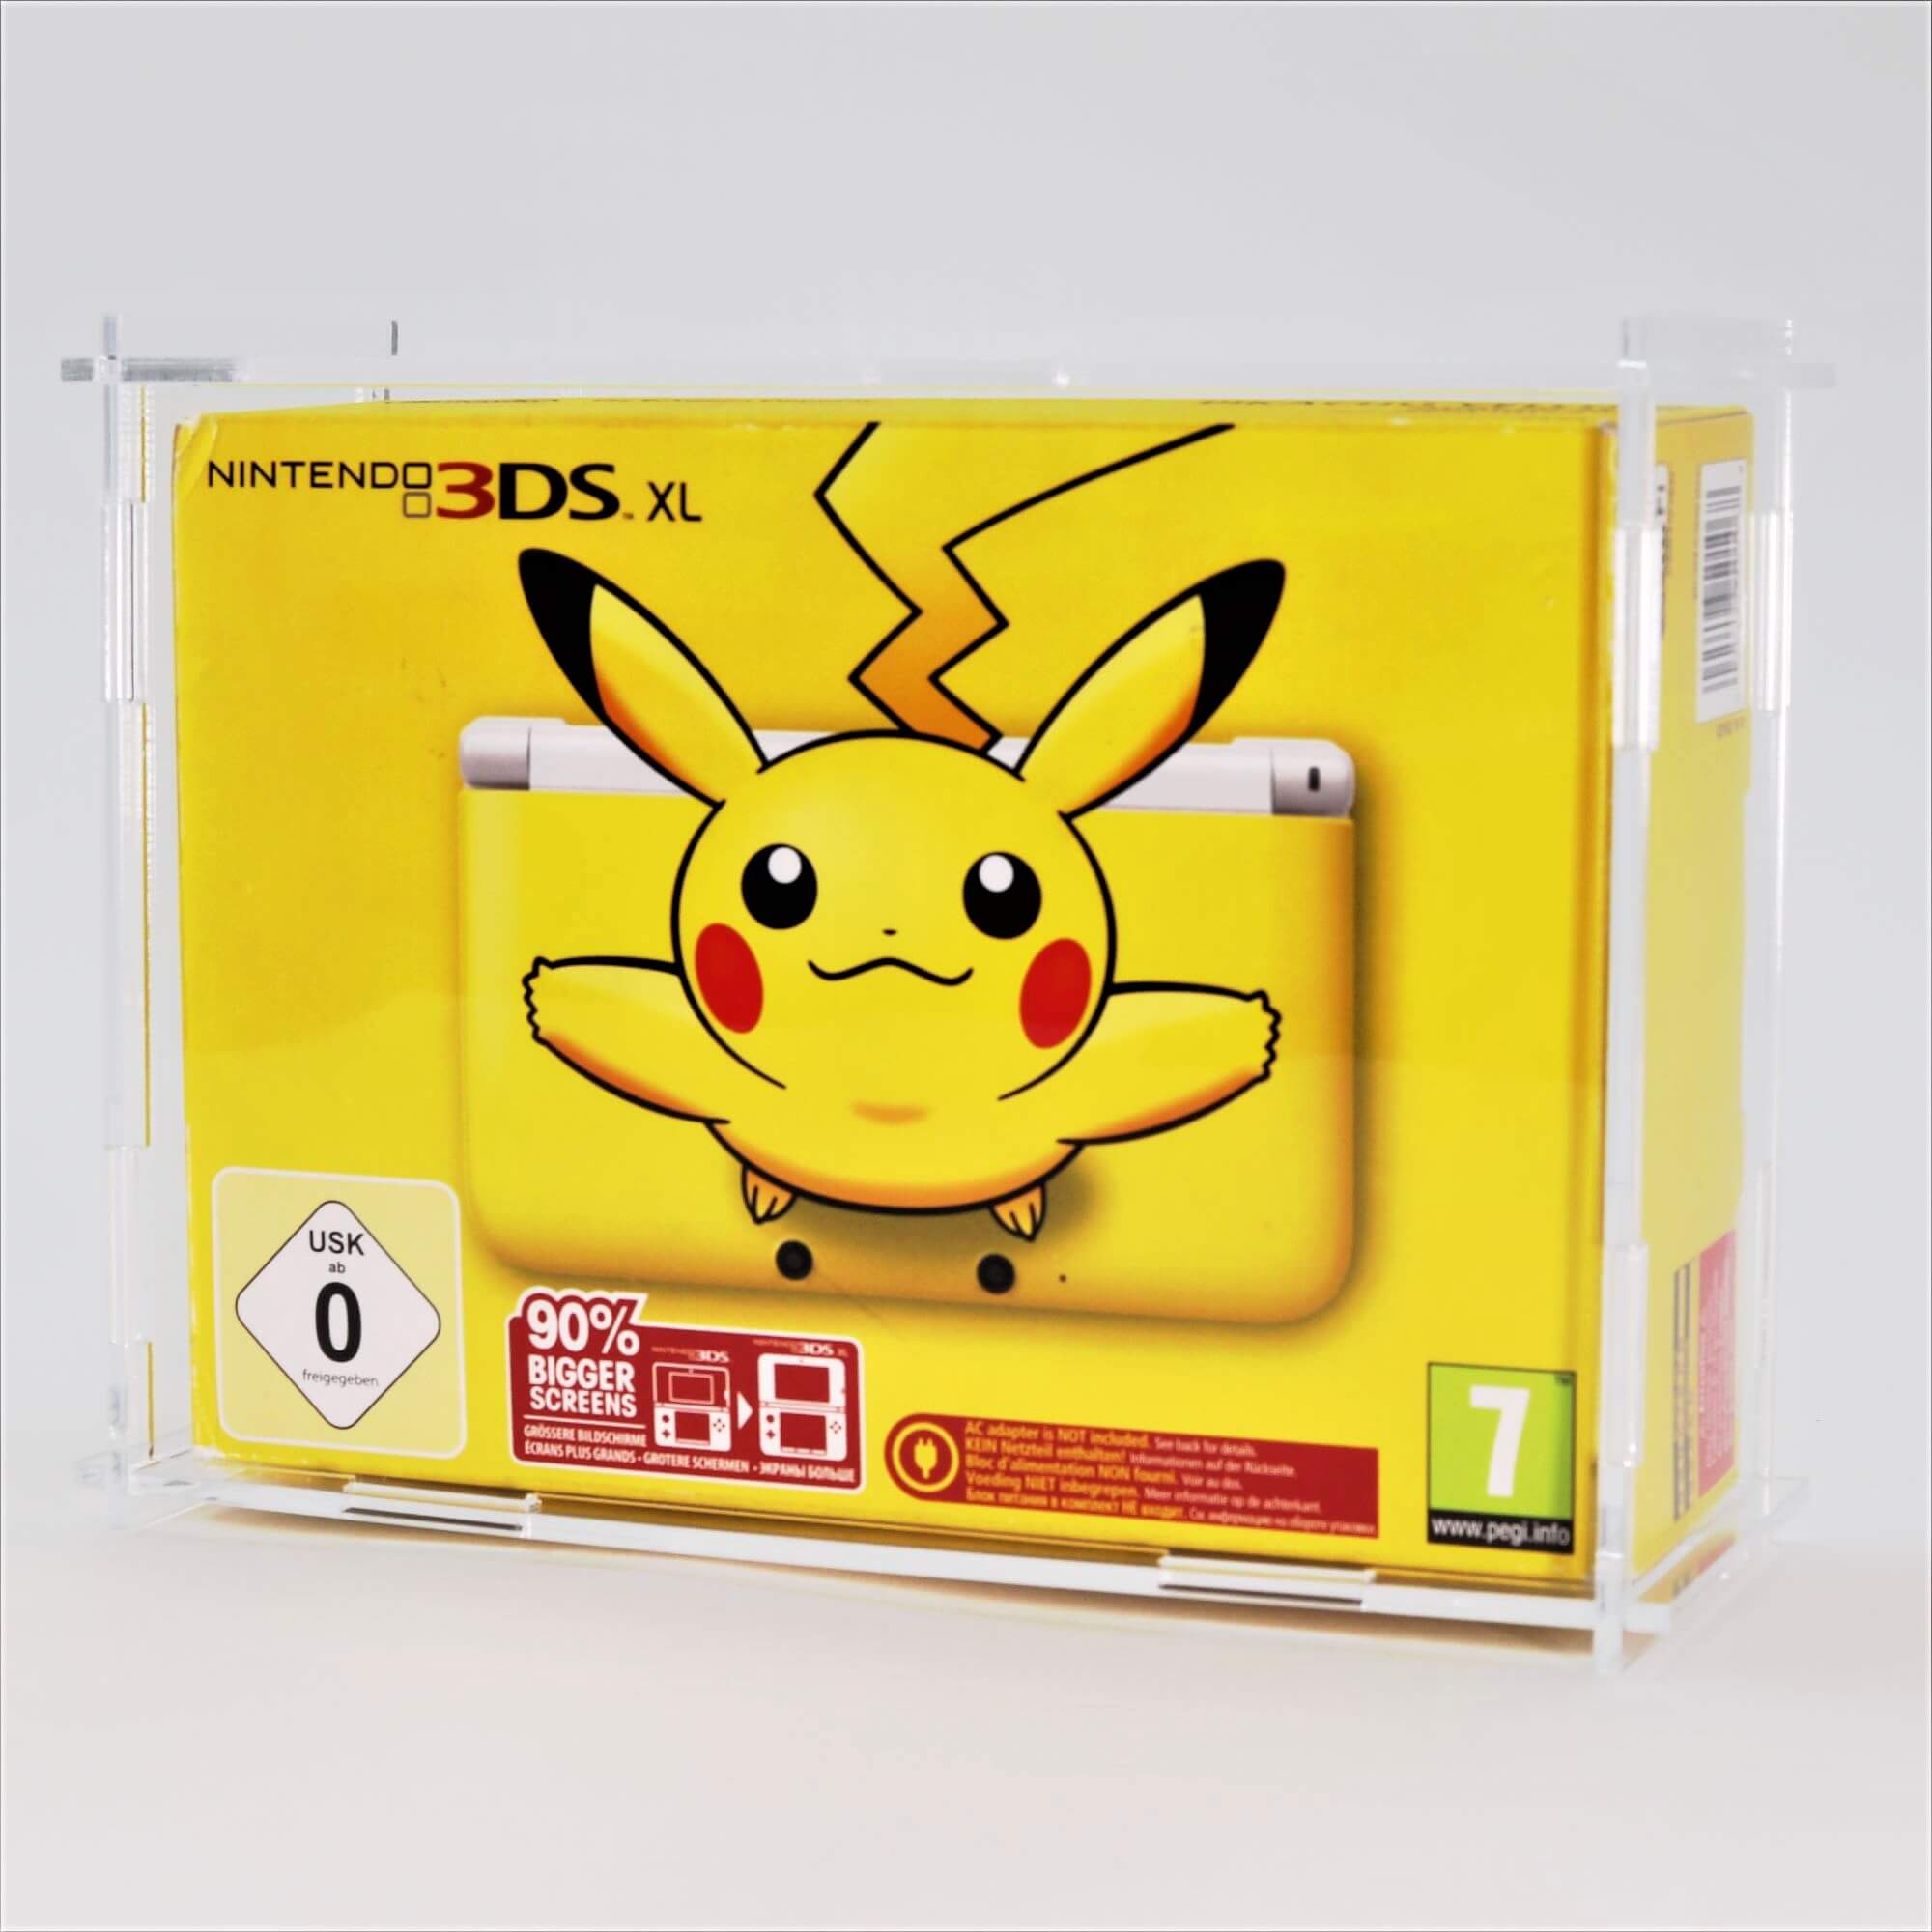 Phot of a Nintendo 3DS XL Boxed Console Display Case